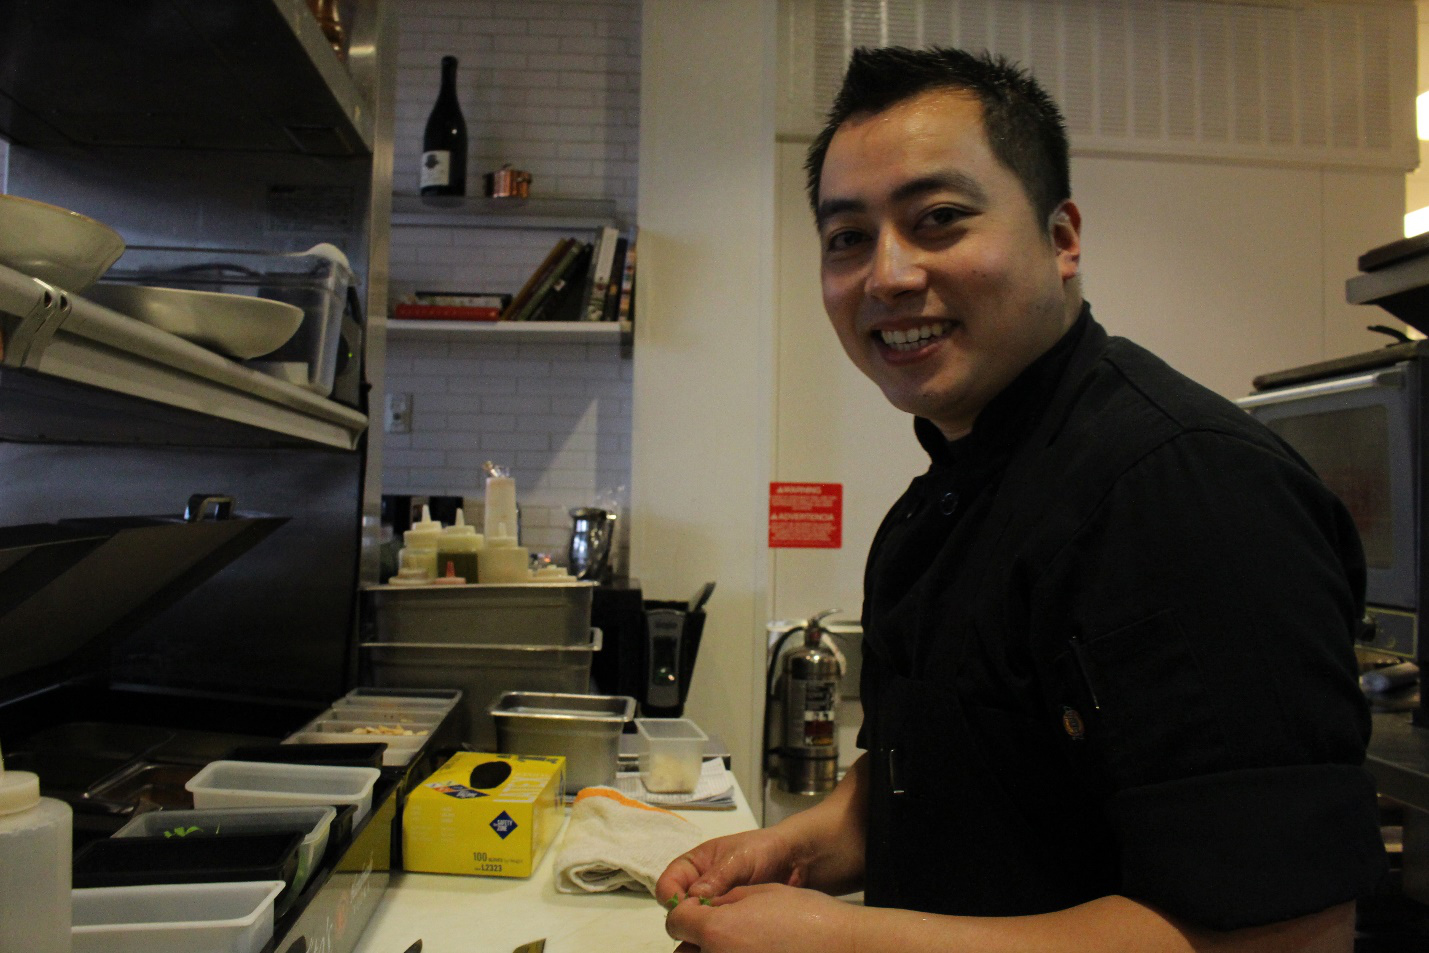 Chef Angelo Lubiano cooks as if he is cooking for his loved ones. (Photo by Ivan Kevin Castro)